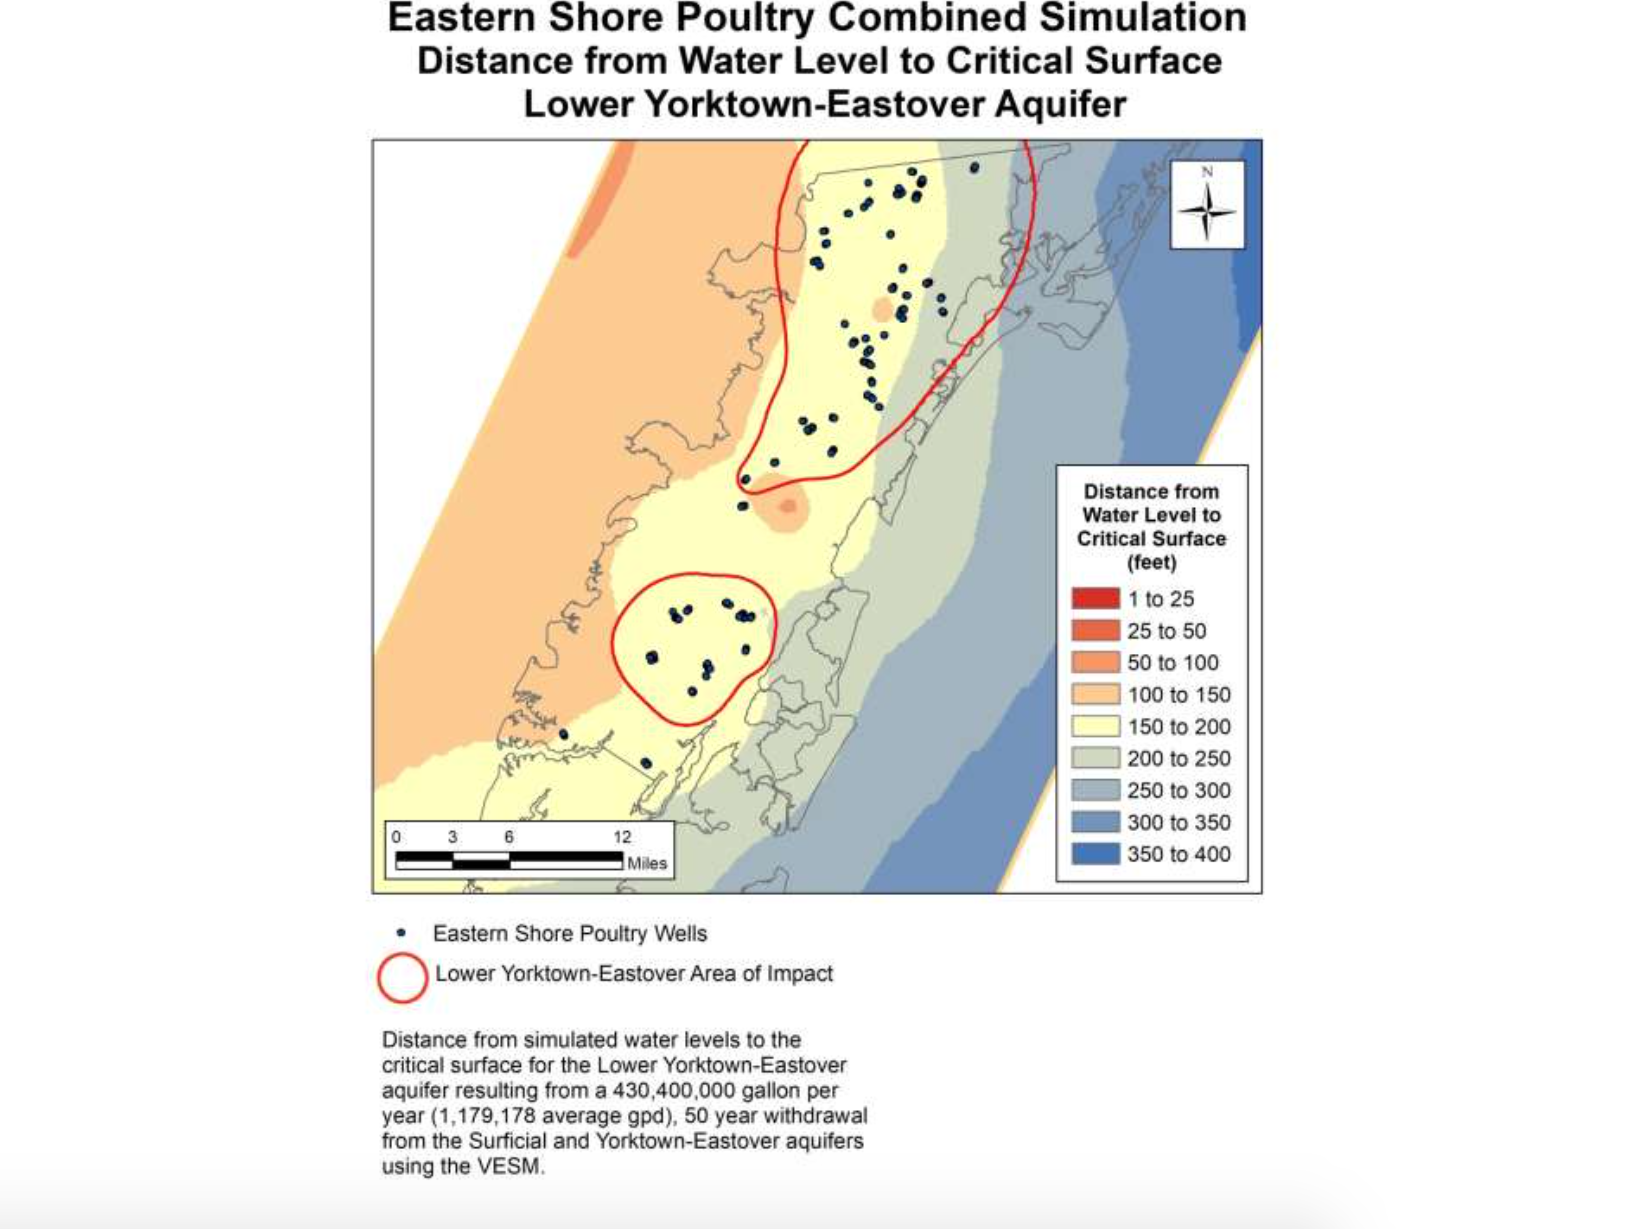 Map of distance from water level to critical surface for Eastern Shore of Virginia poultry operations simulation